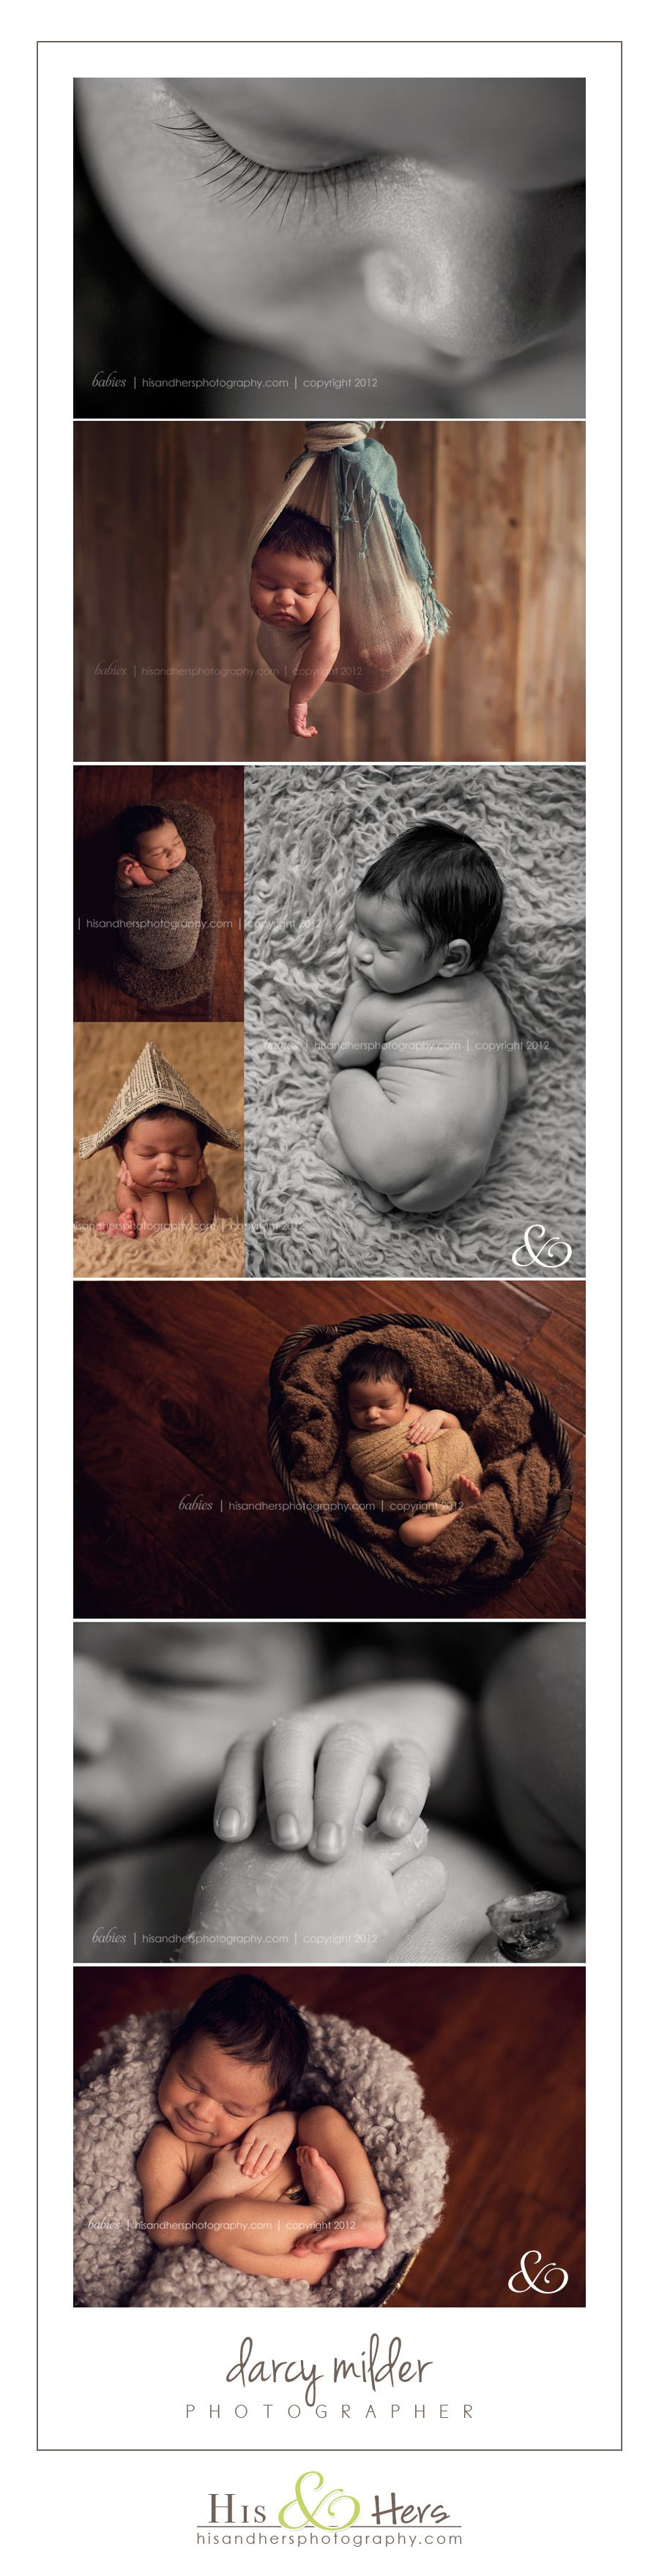 des moines iowa newborn photographer baby photography baby pictures